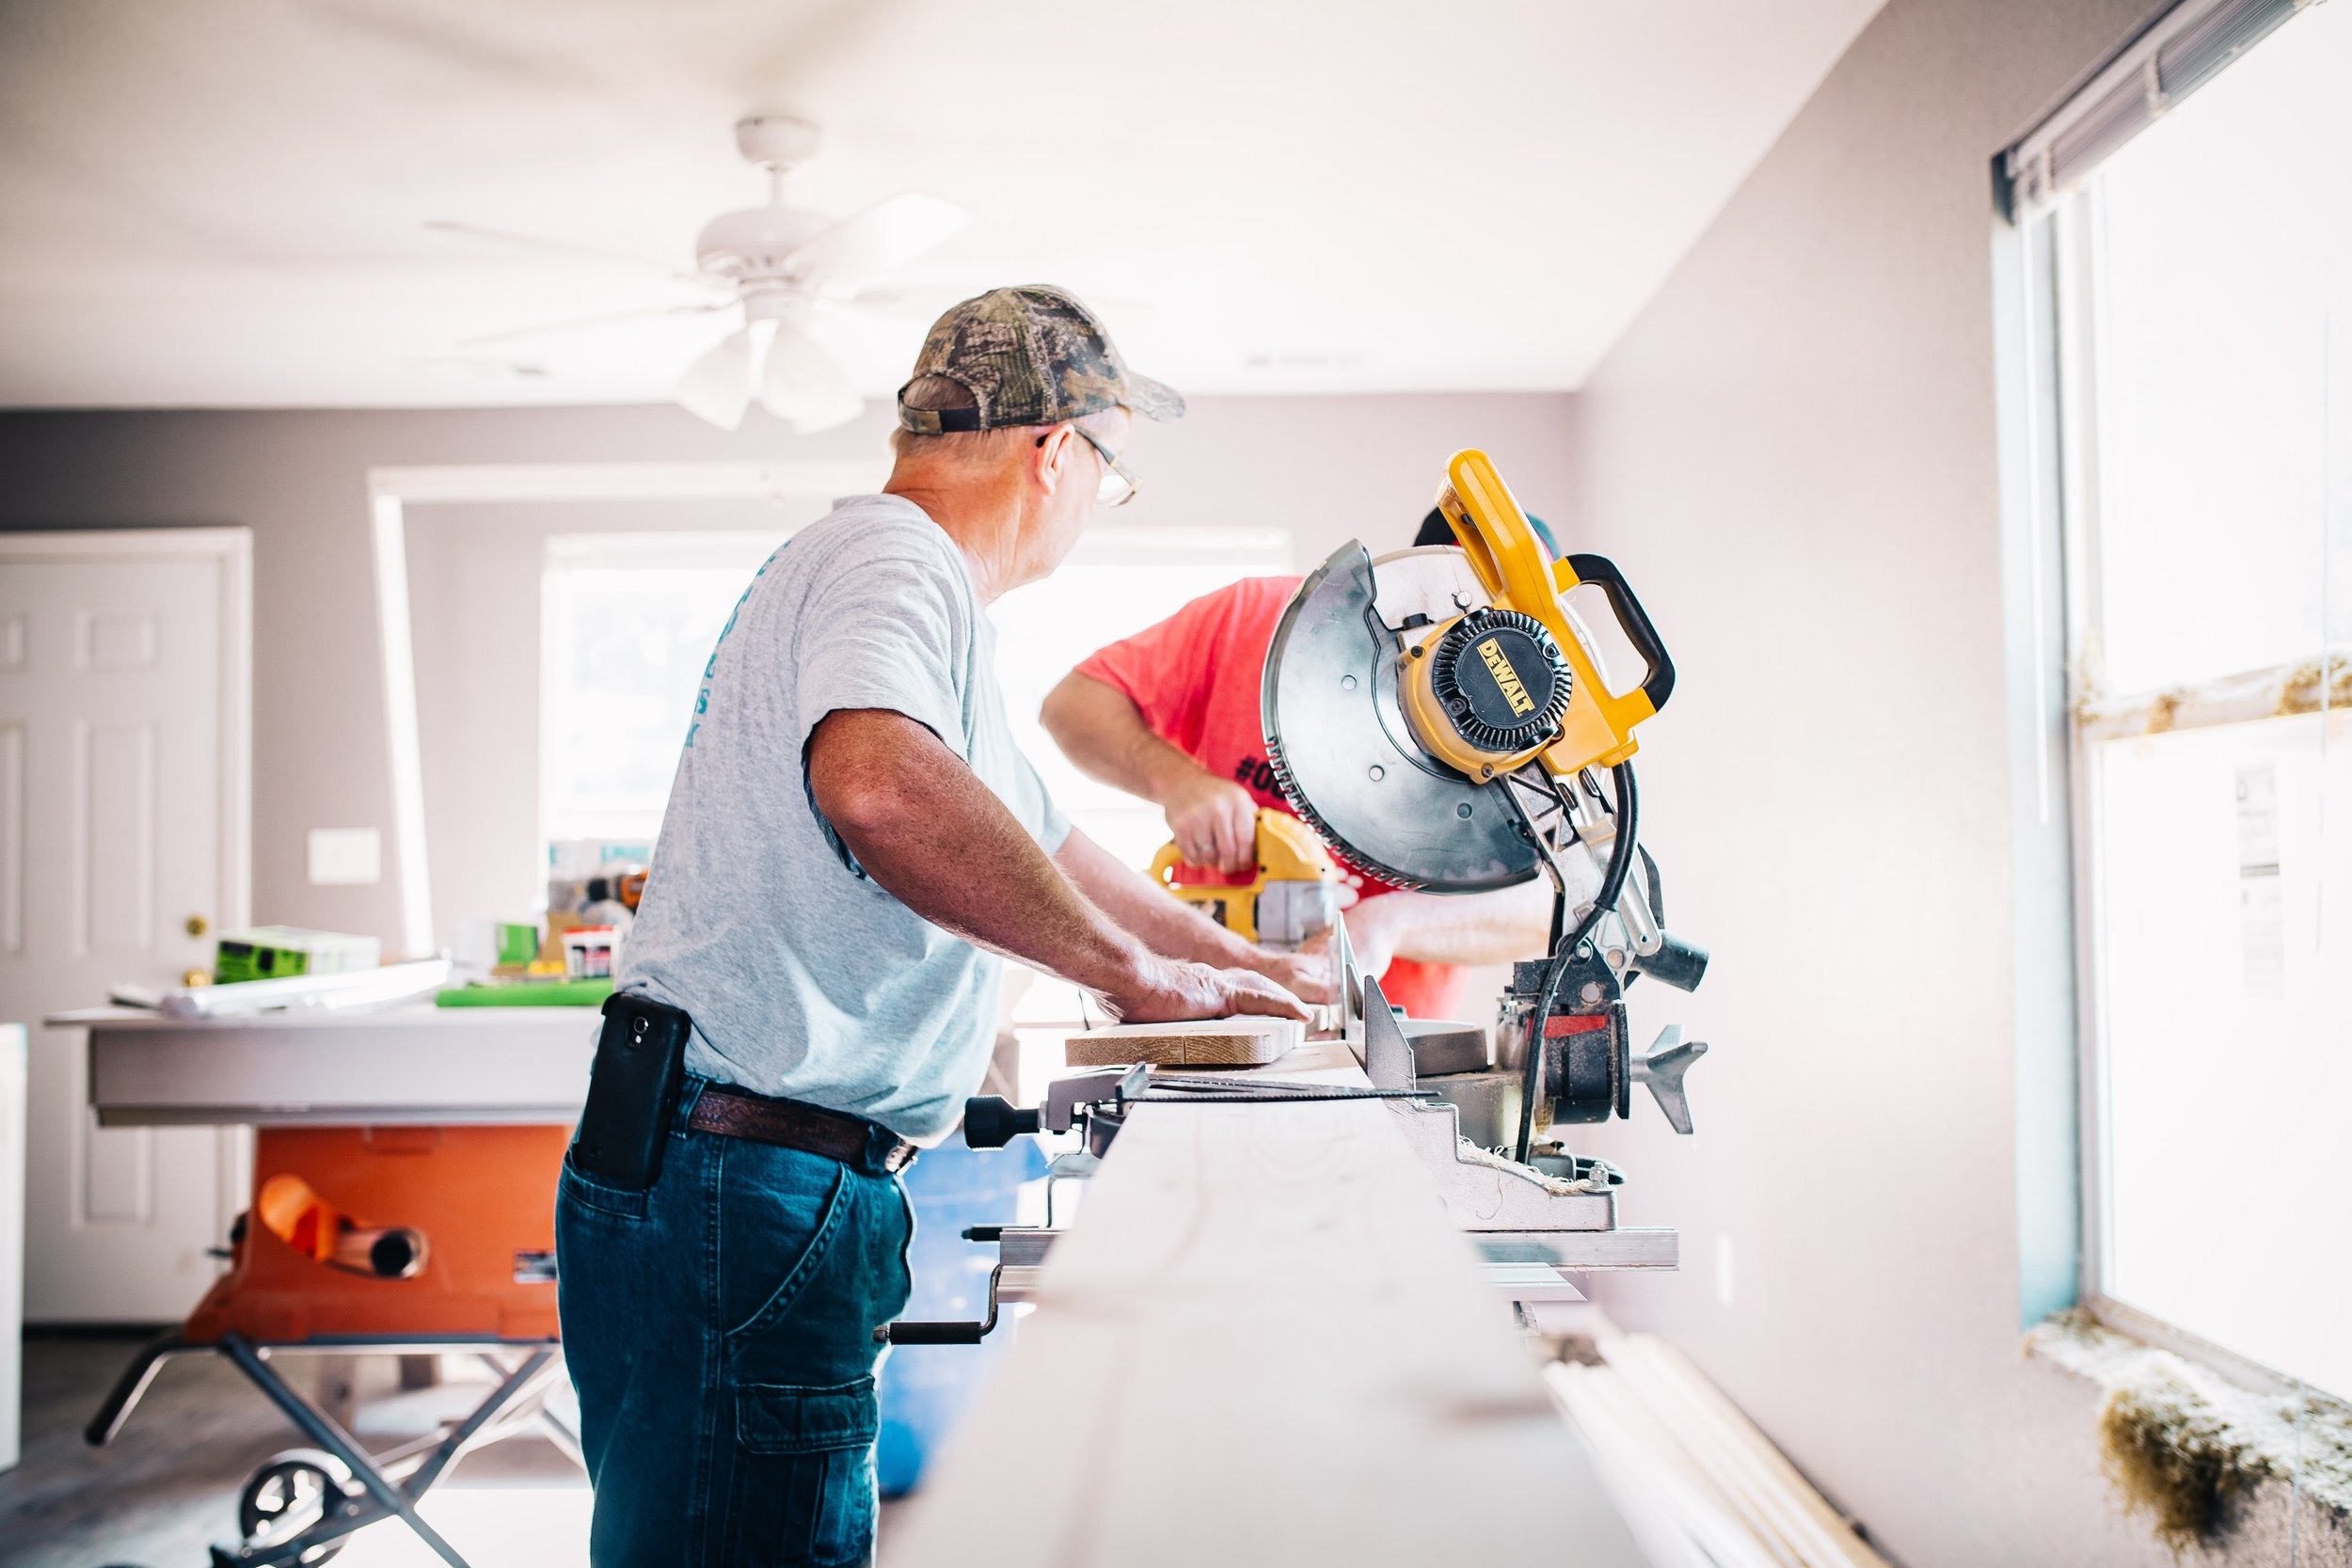 What You Can Expect - We schedule an initial visit to the premise to review construction documents, inspect the landscape of the job site, and learn what you want to accomplish with the project.